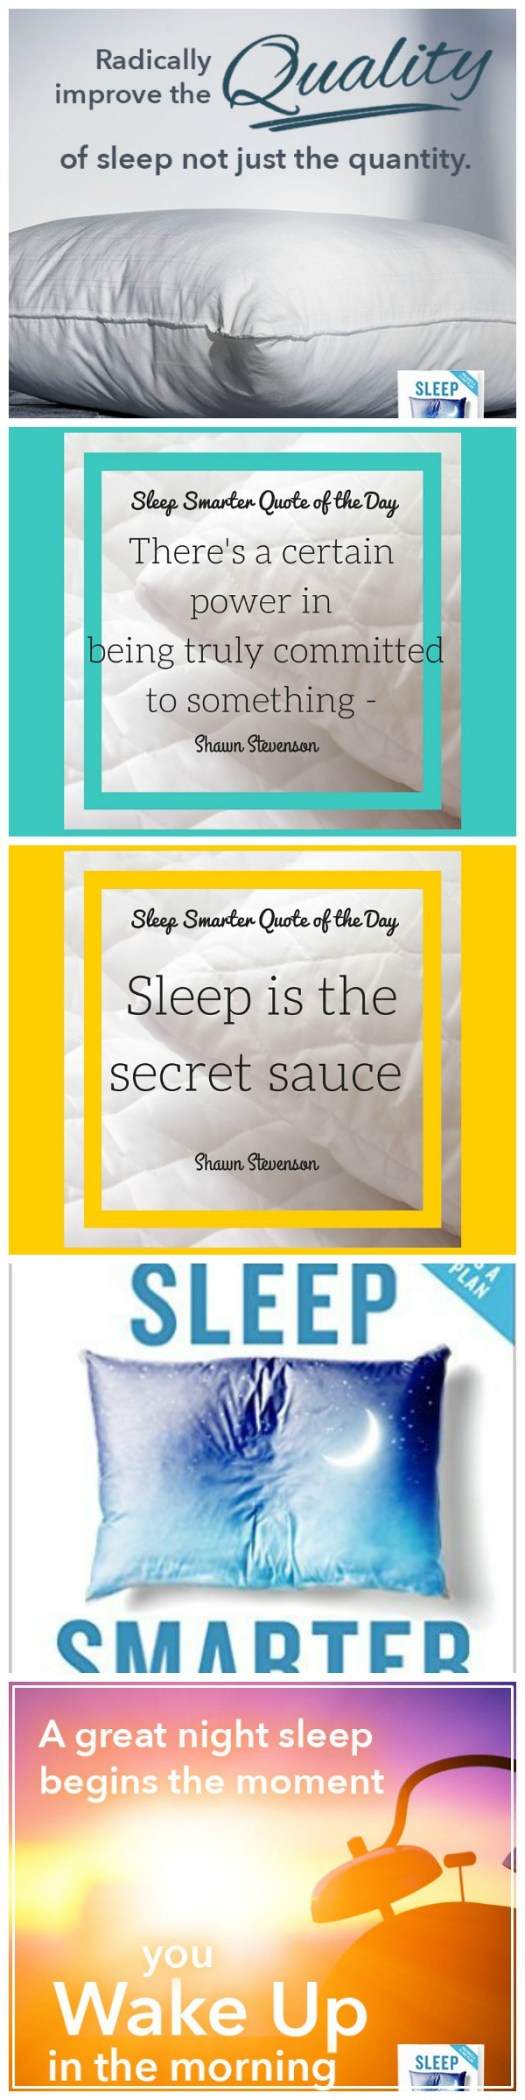 sleep smarter pinterest